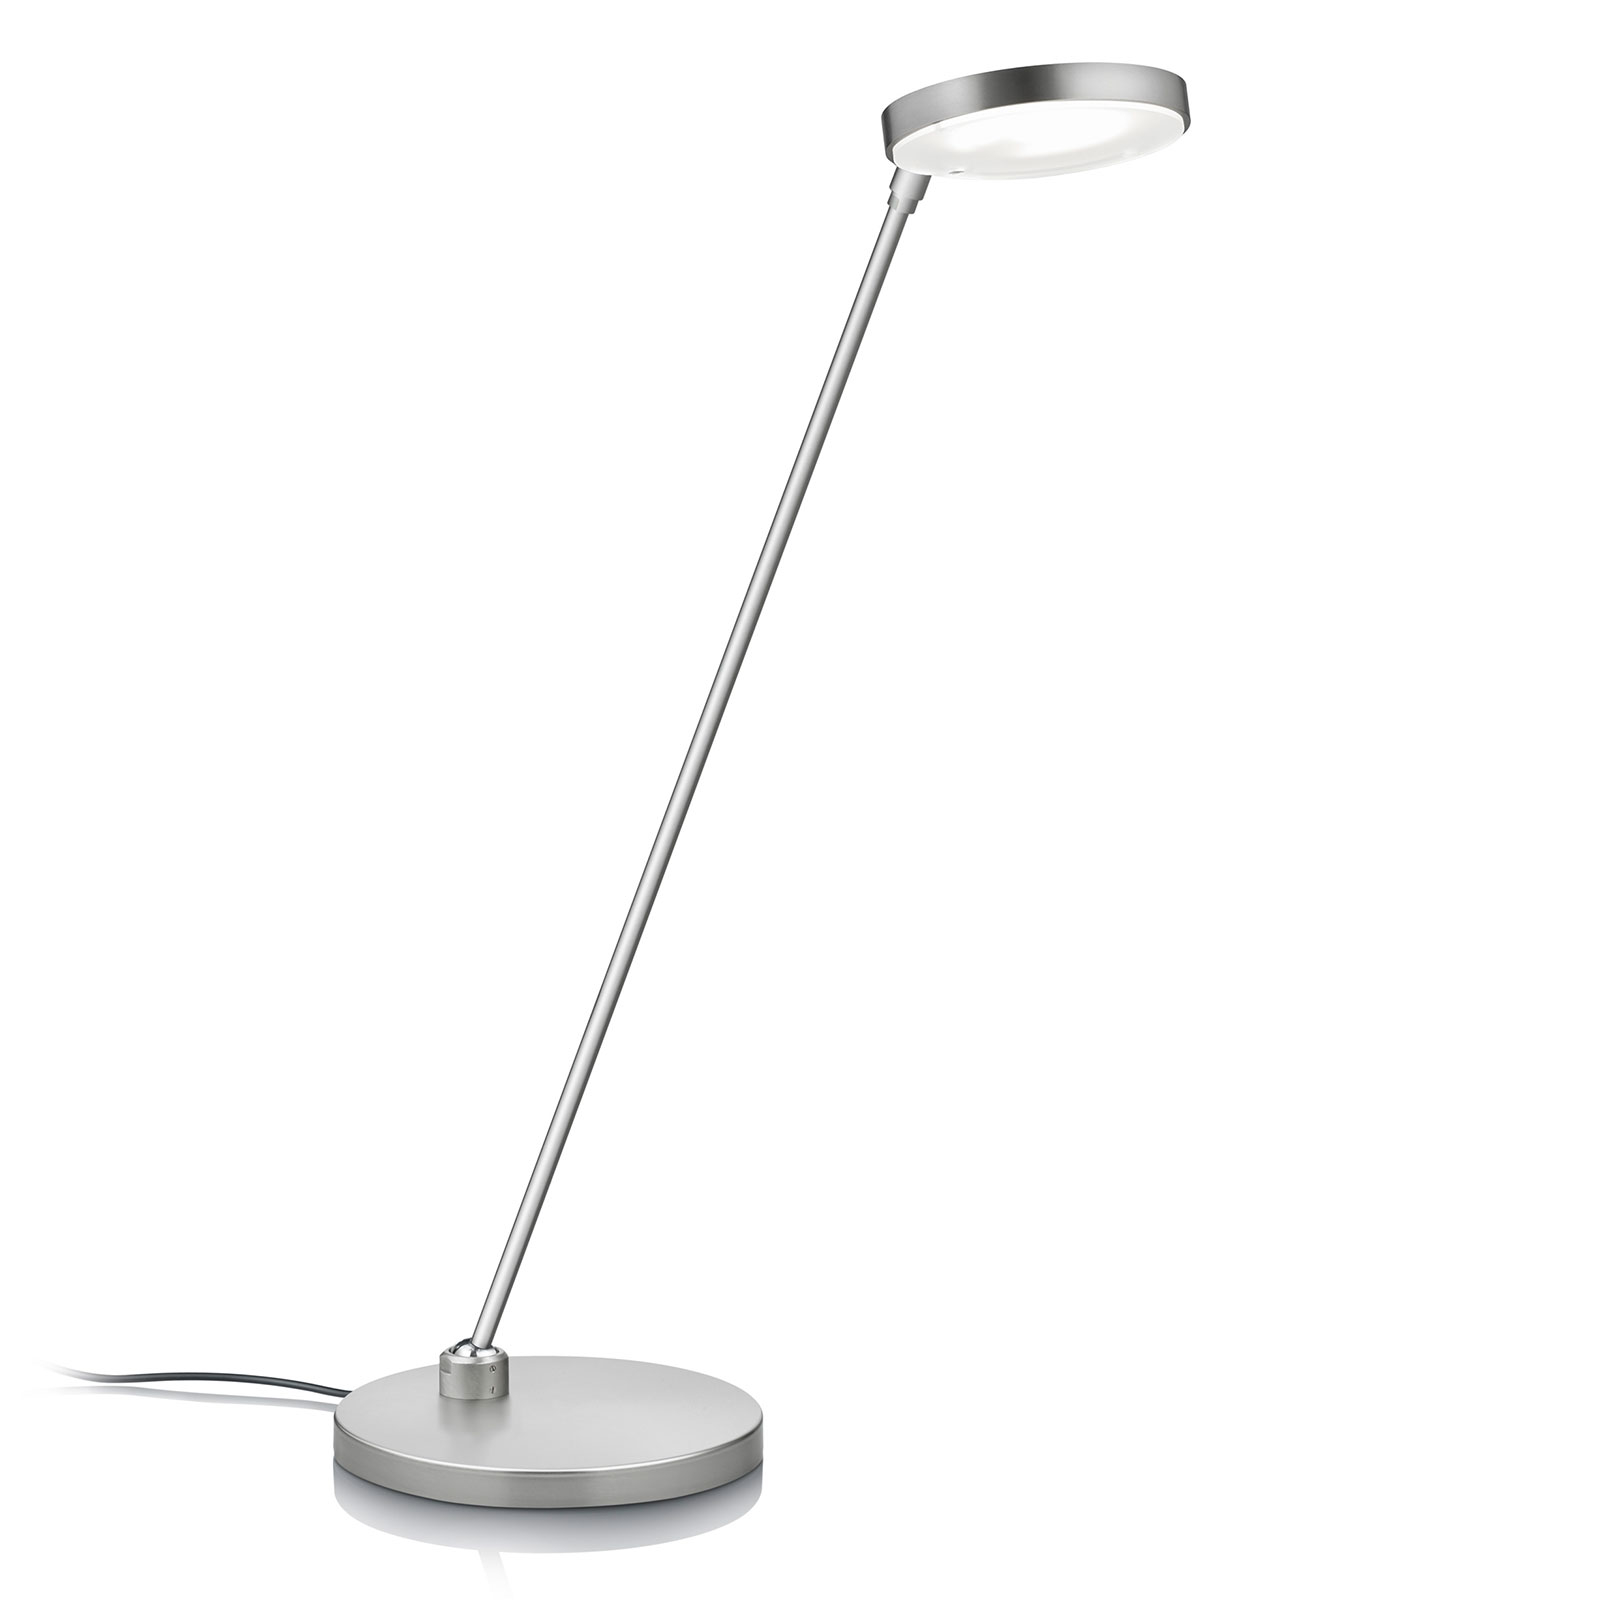 Lampe à poser LED Thea-T, nickel mat